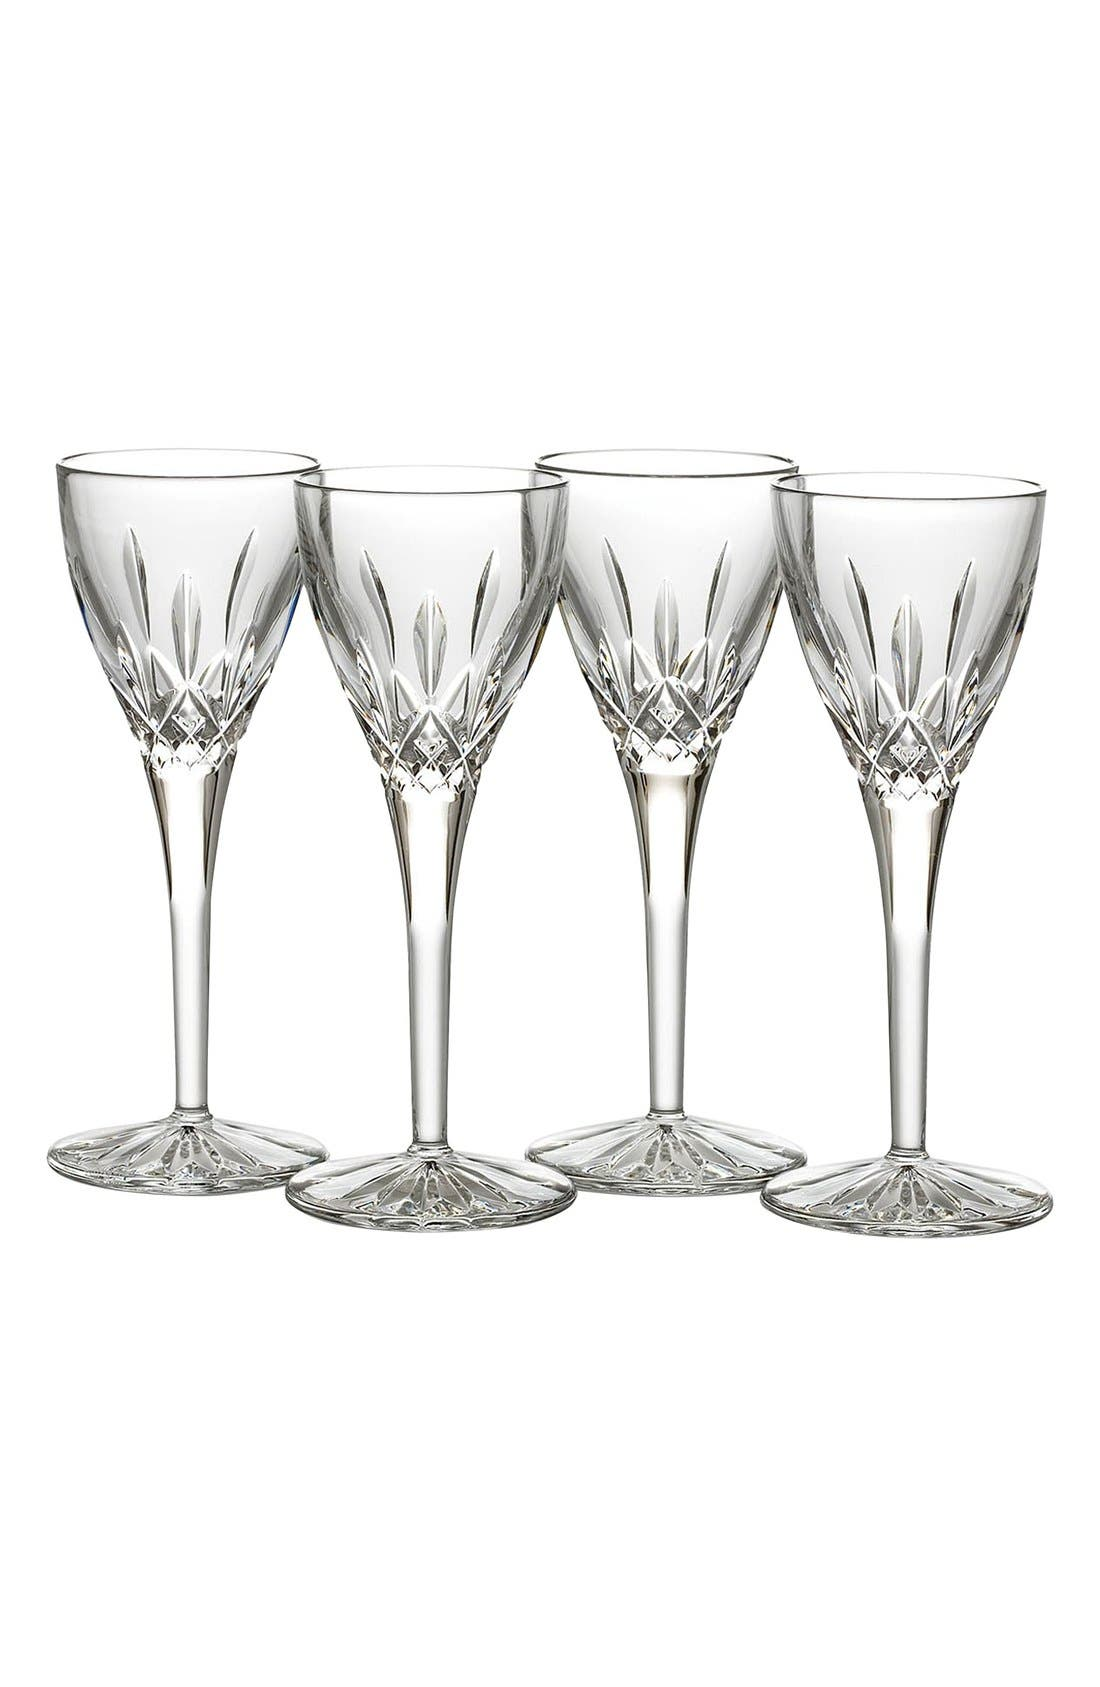 Alternate Image 1 Selected - Waterford 'Lismore' Lead Crystal Cordial Glasses (Set of 4)